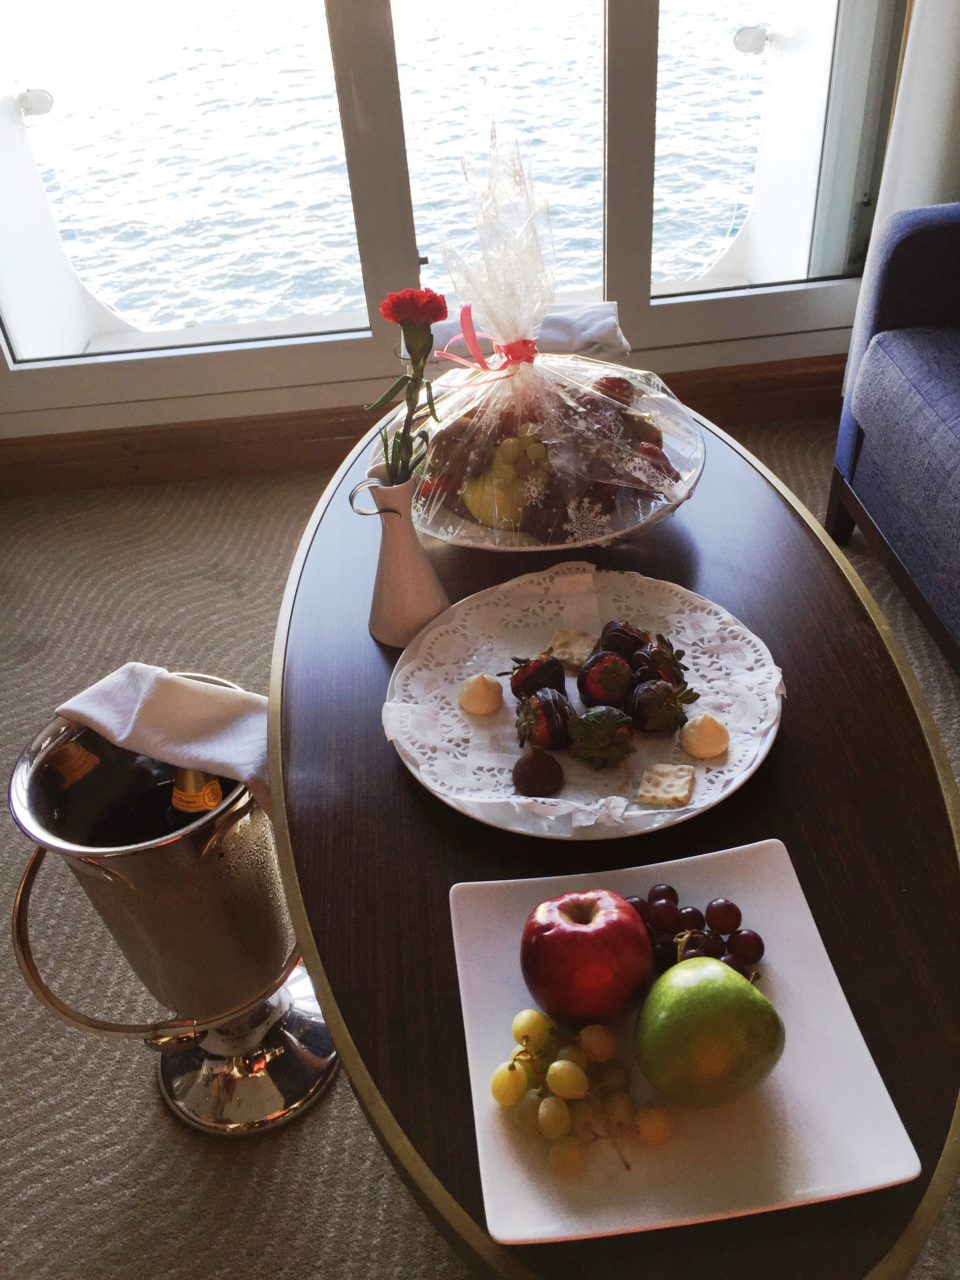 Windstar Cruises ~ Brut Champagne from Maison Veuve Cliquot and dark chocolate-covered strawberries ... my kind of welcome